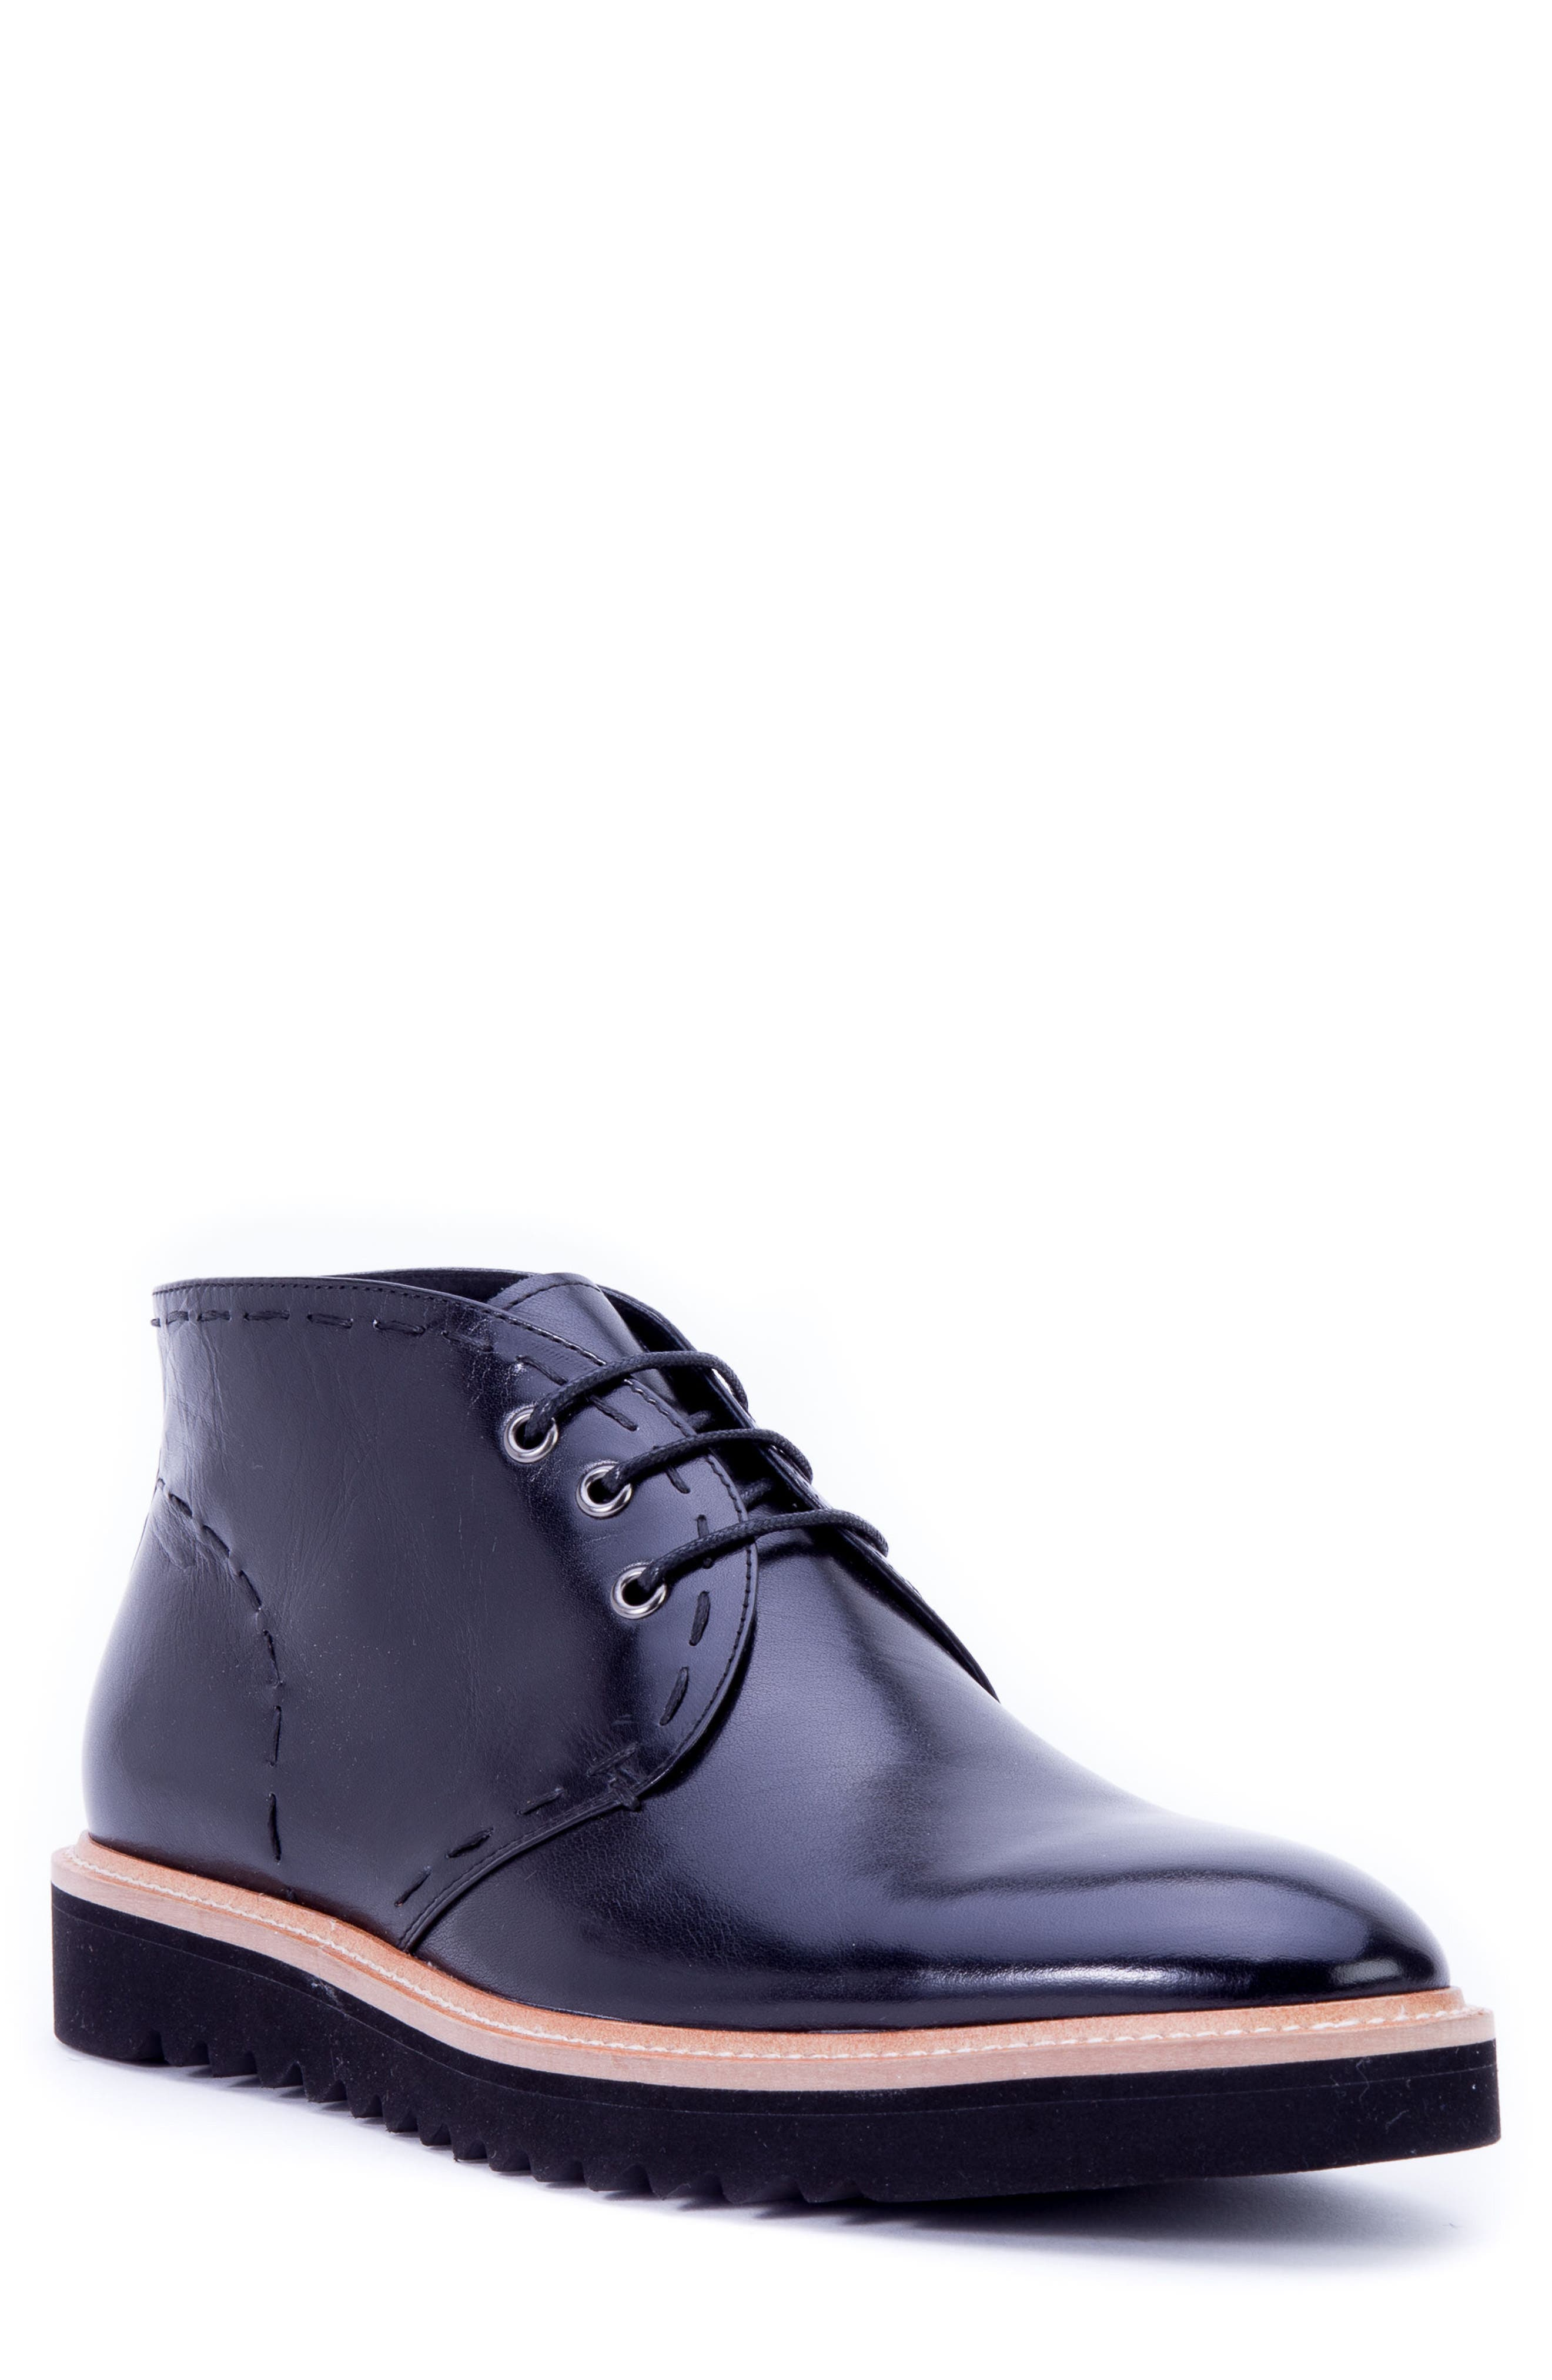 Lombardo Chukka Boot,                             Main thumbnail 1, color,                             Black Leather